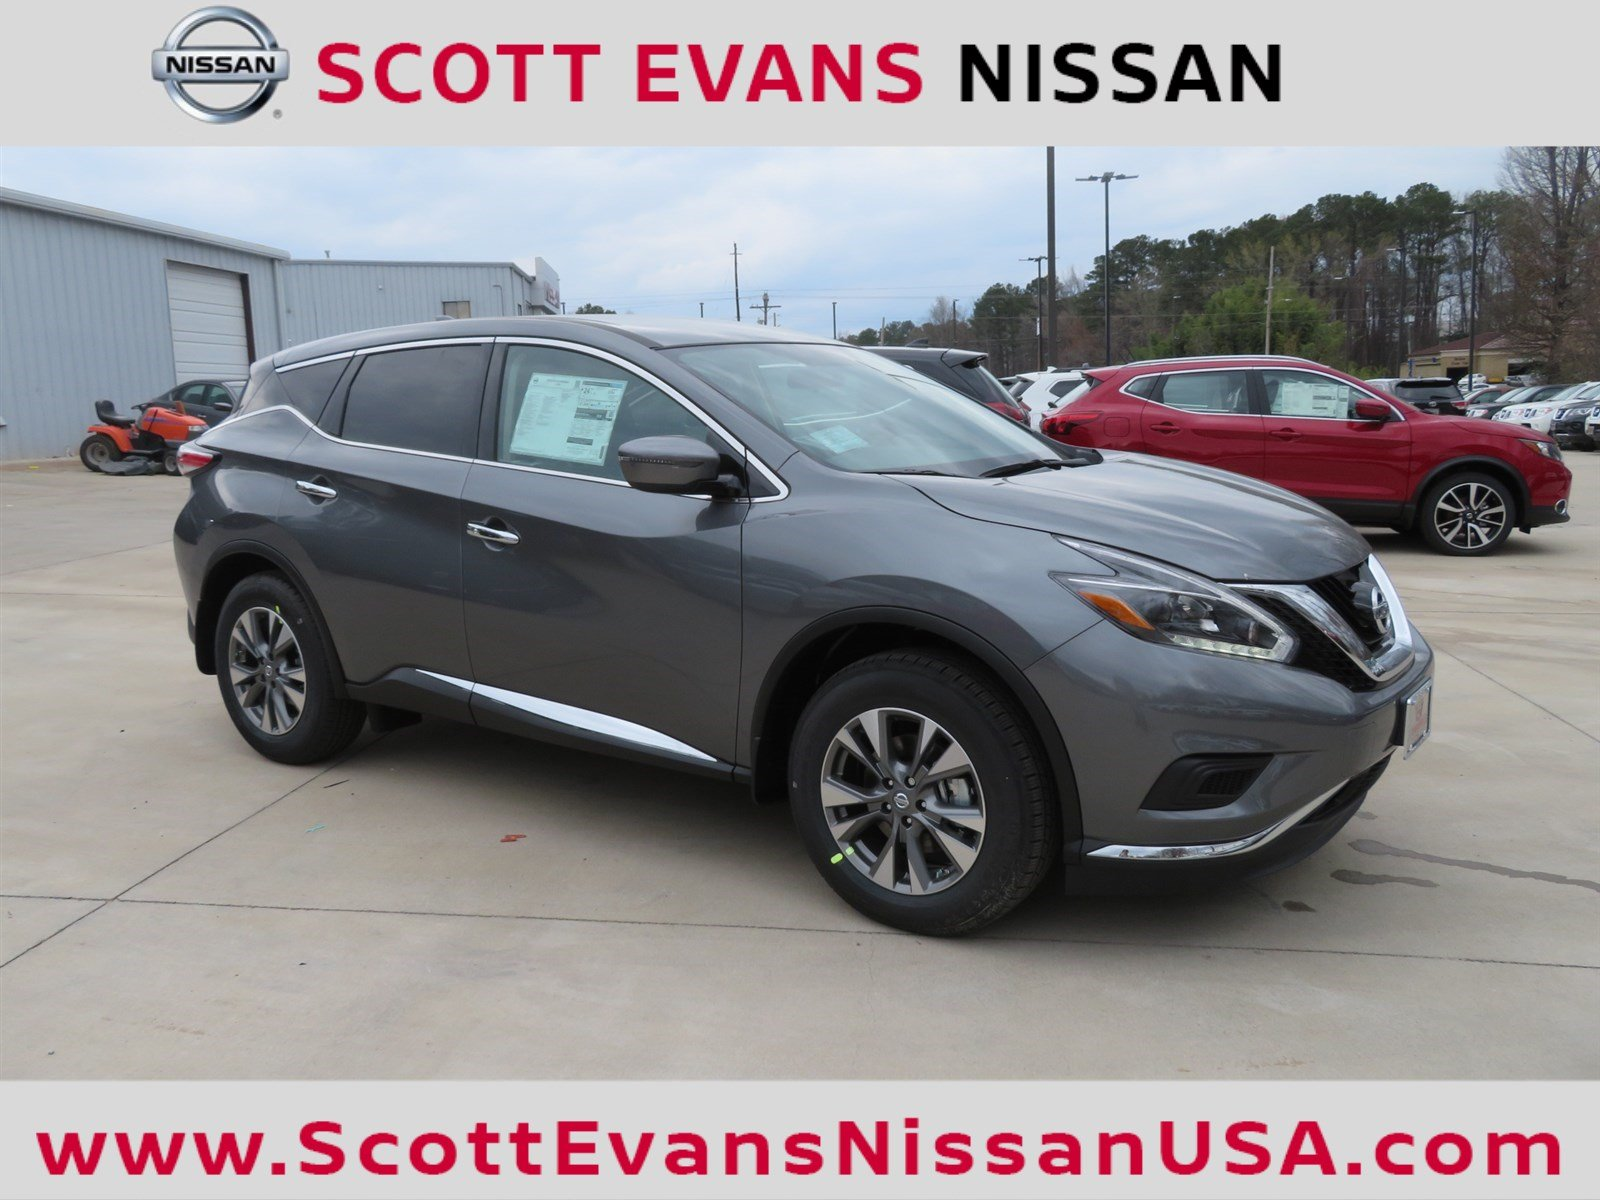 New 2018 Nissan Murano S Sport Utility in Carrollton #18330 | Scott ...